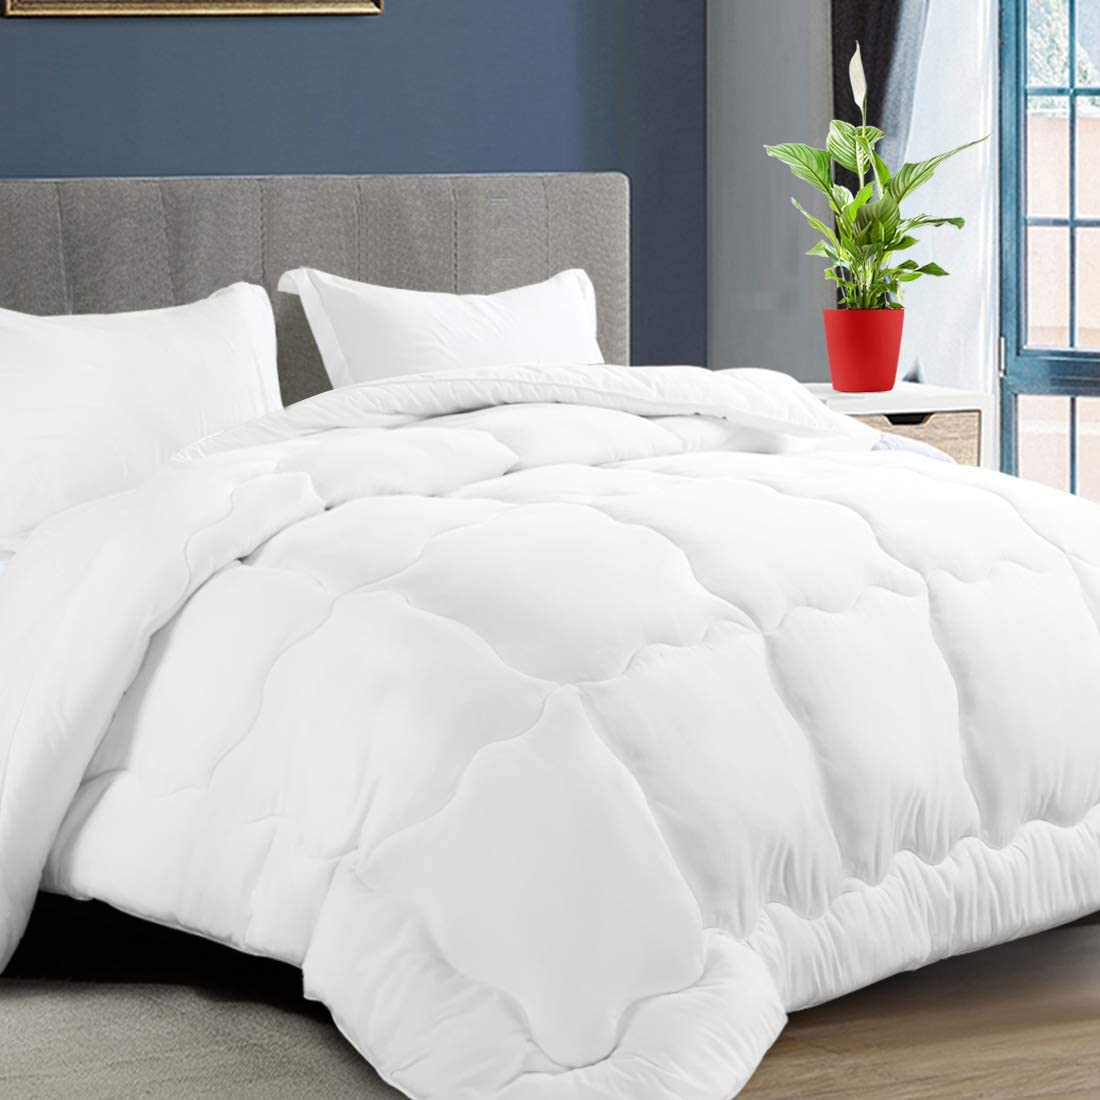 KARRISM All Season Down Alternative King Comforter, Summer Cooling Comforter Ultra Soft Quilted Duvet Insert with Corner Tabs, Wavy Box Stitched, Luxury Fluffy Lightweight (White, 90 x 102 inch)